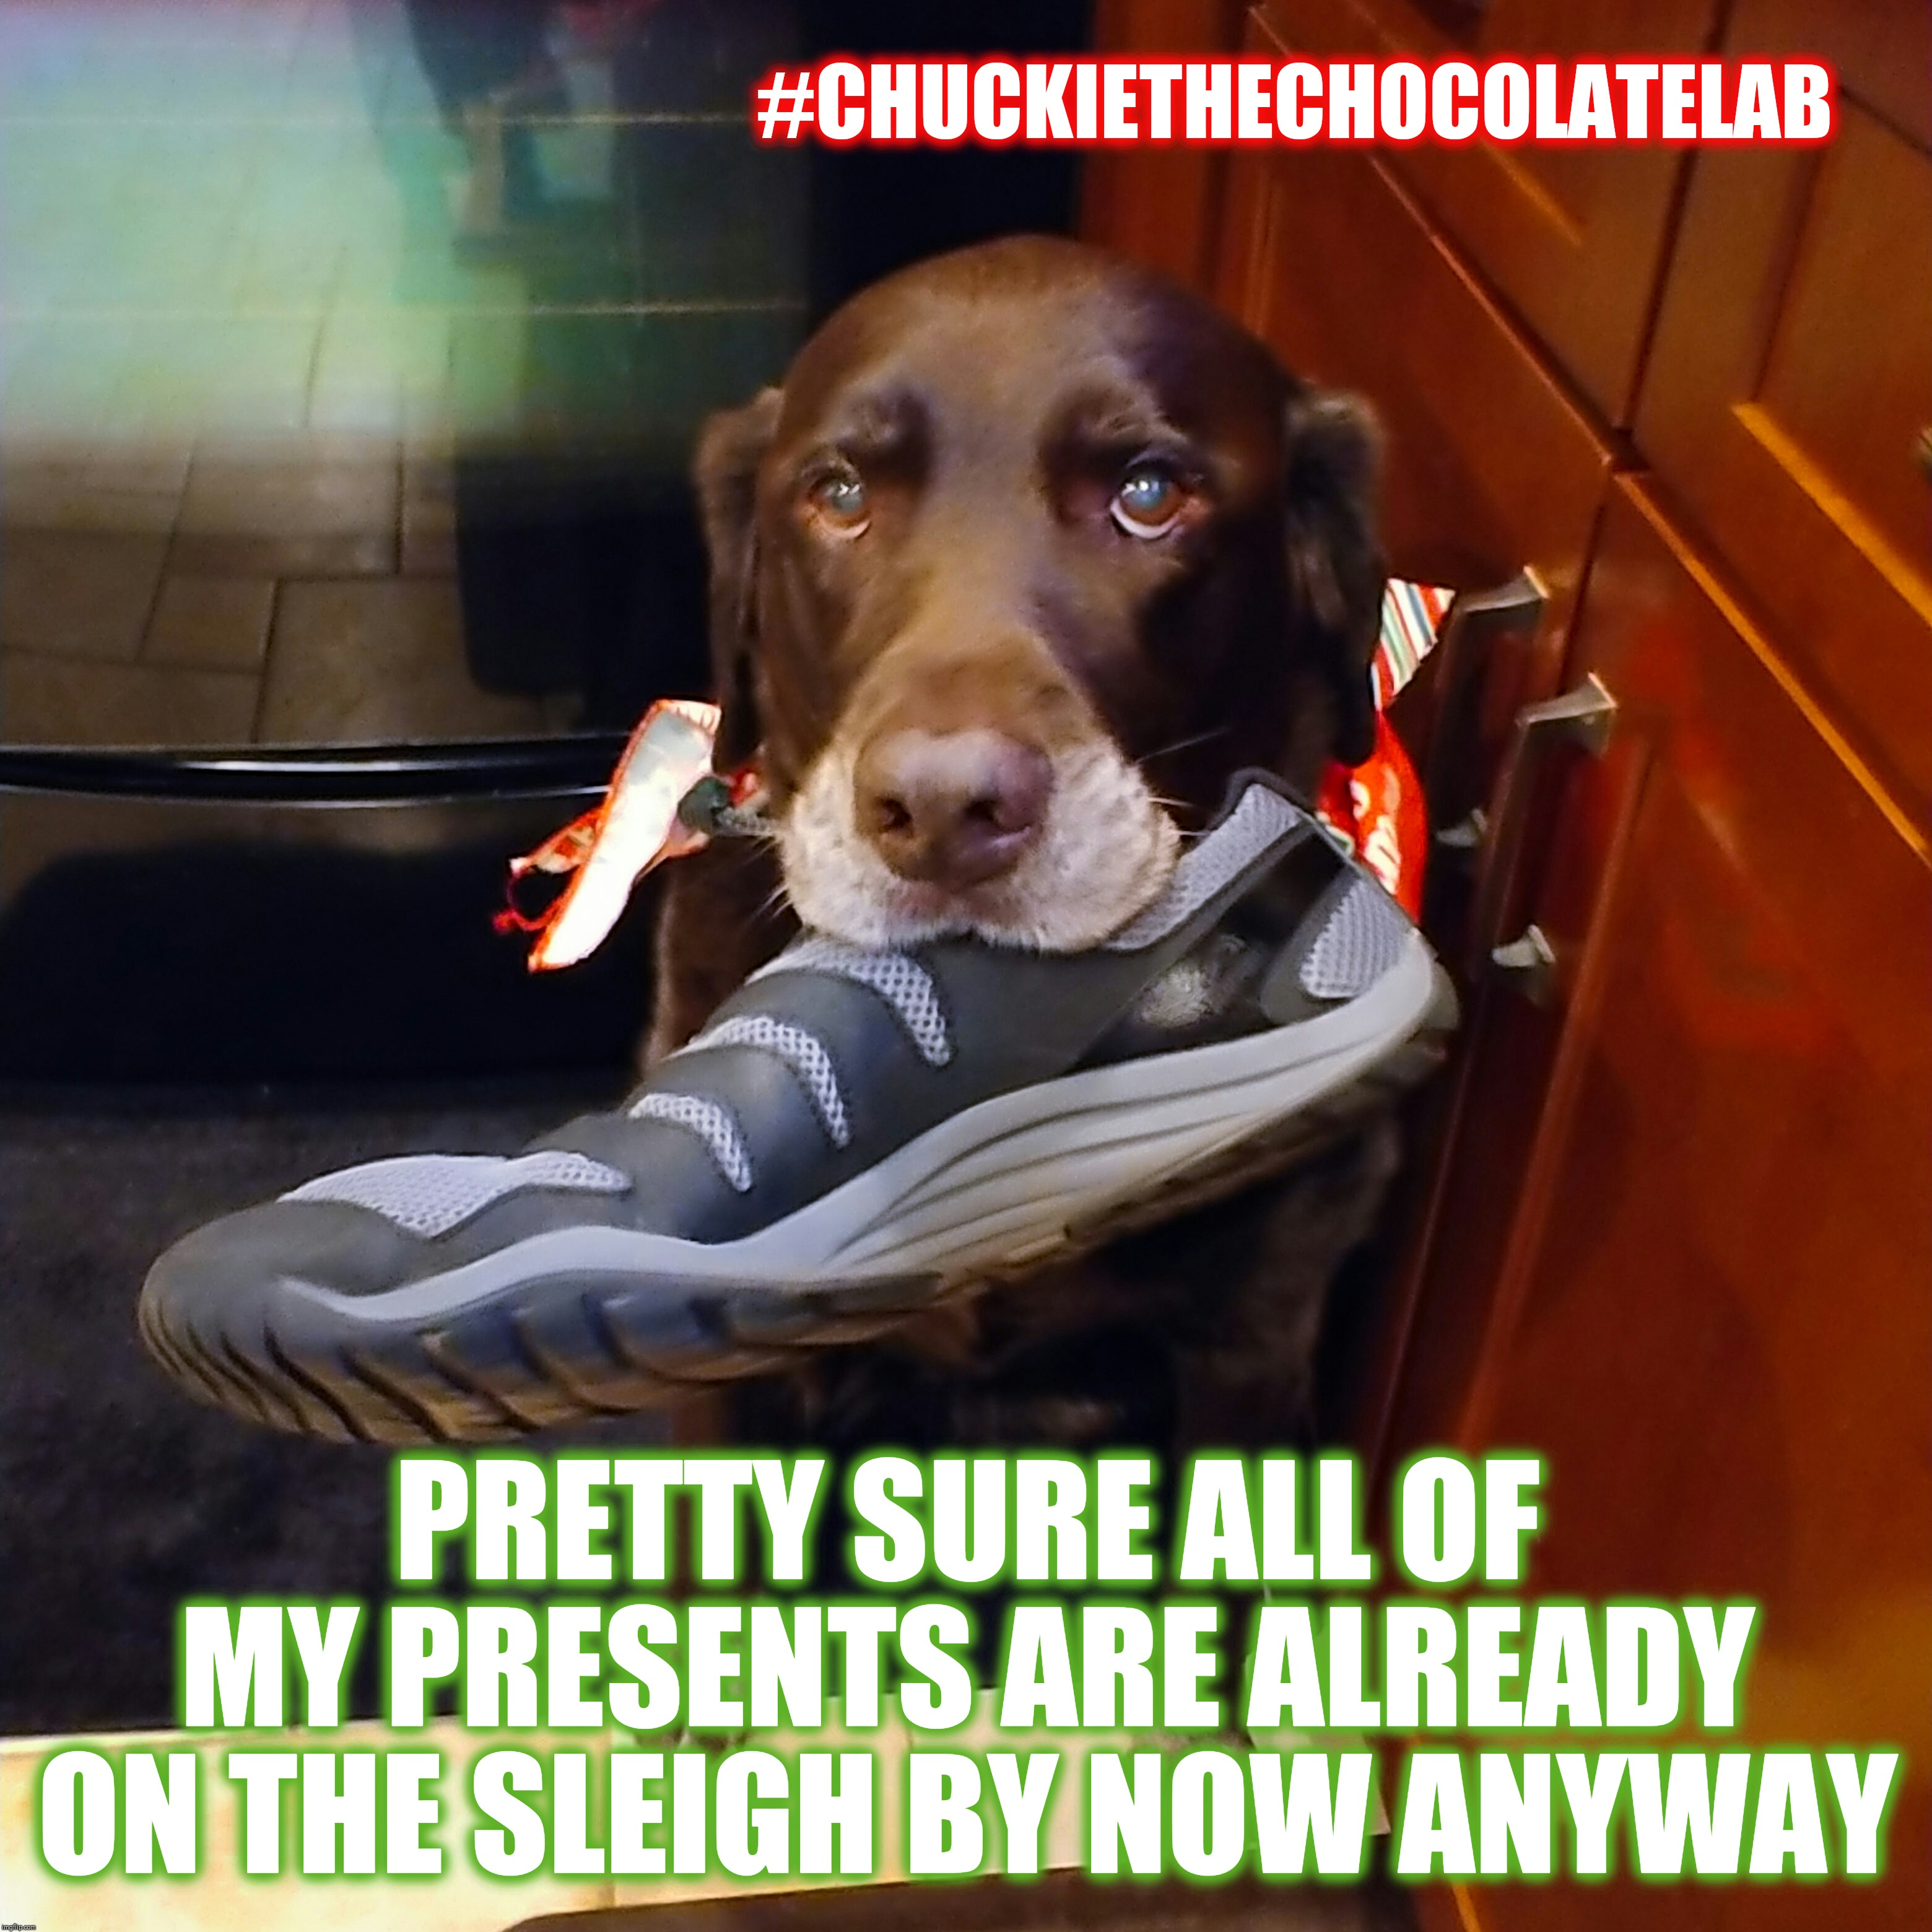 Naughty on Christmas eve | PRETTY SURE ALL OF MY PRESENTS ARE ALREADY ON THE SLEIGH BY NOW ANYWAY #CHUCKIETHECHOCOLATELAB | image tagged in chuckie the chocolate lab,santa naughty list,dogs,funny,memes,christmas eve | made w/ Imgflip meme maker